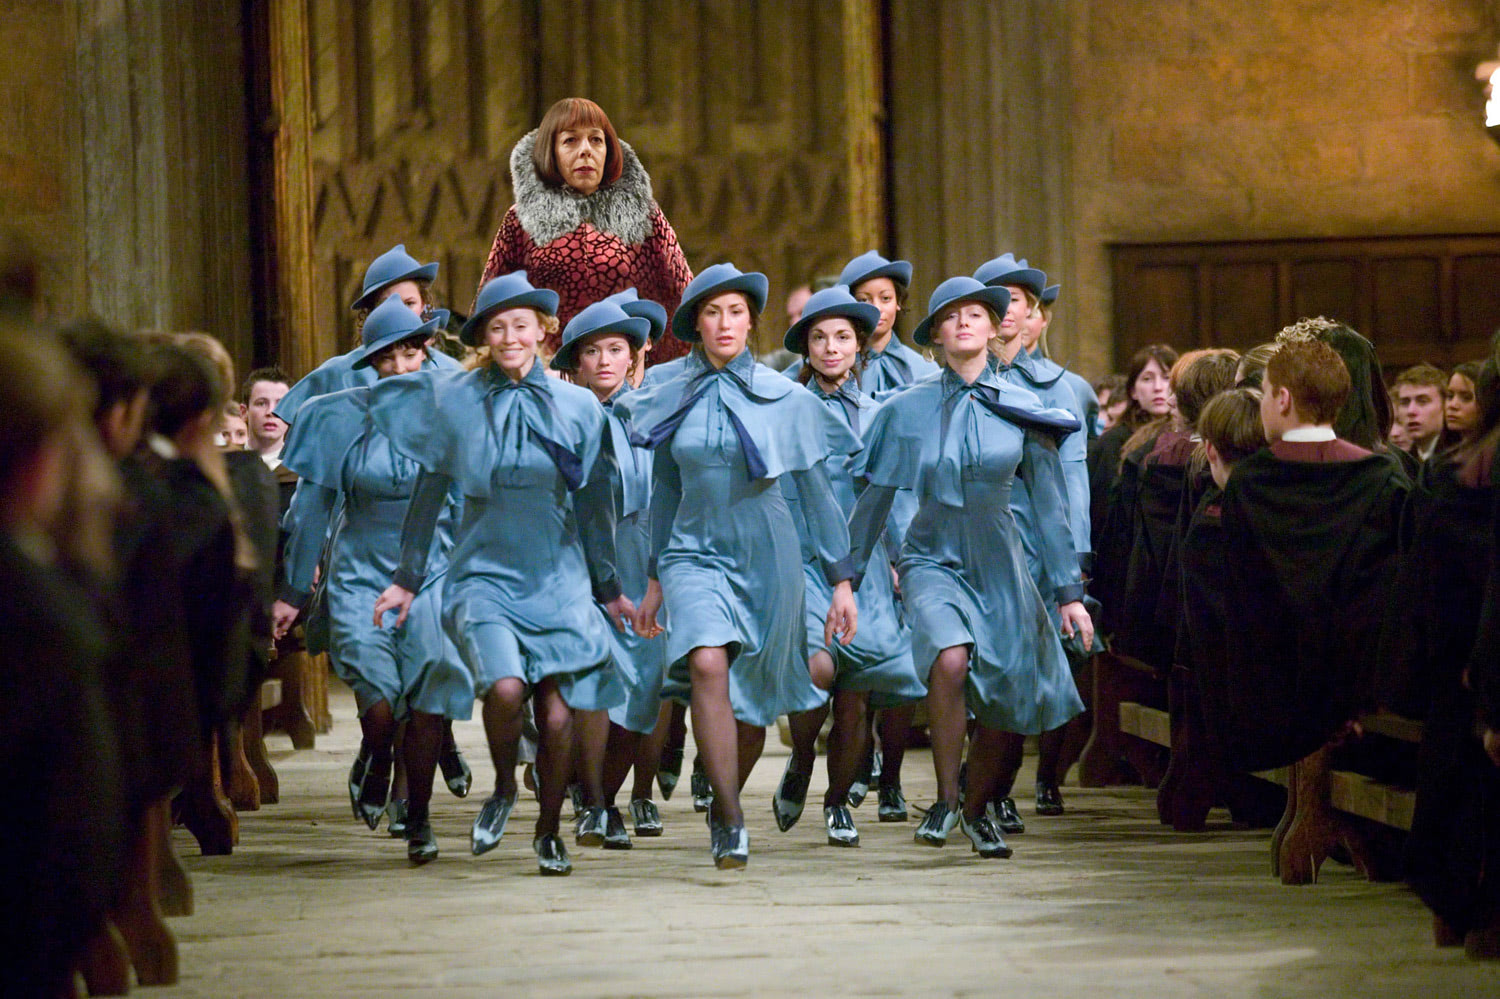 Beauxbatons students arrive at Hogwarts